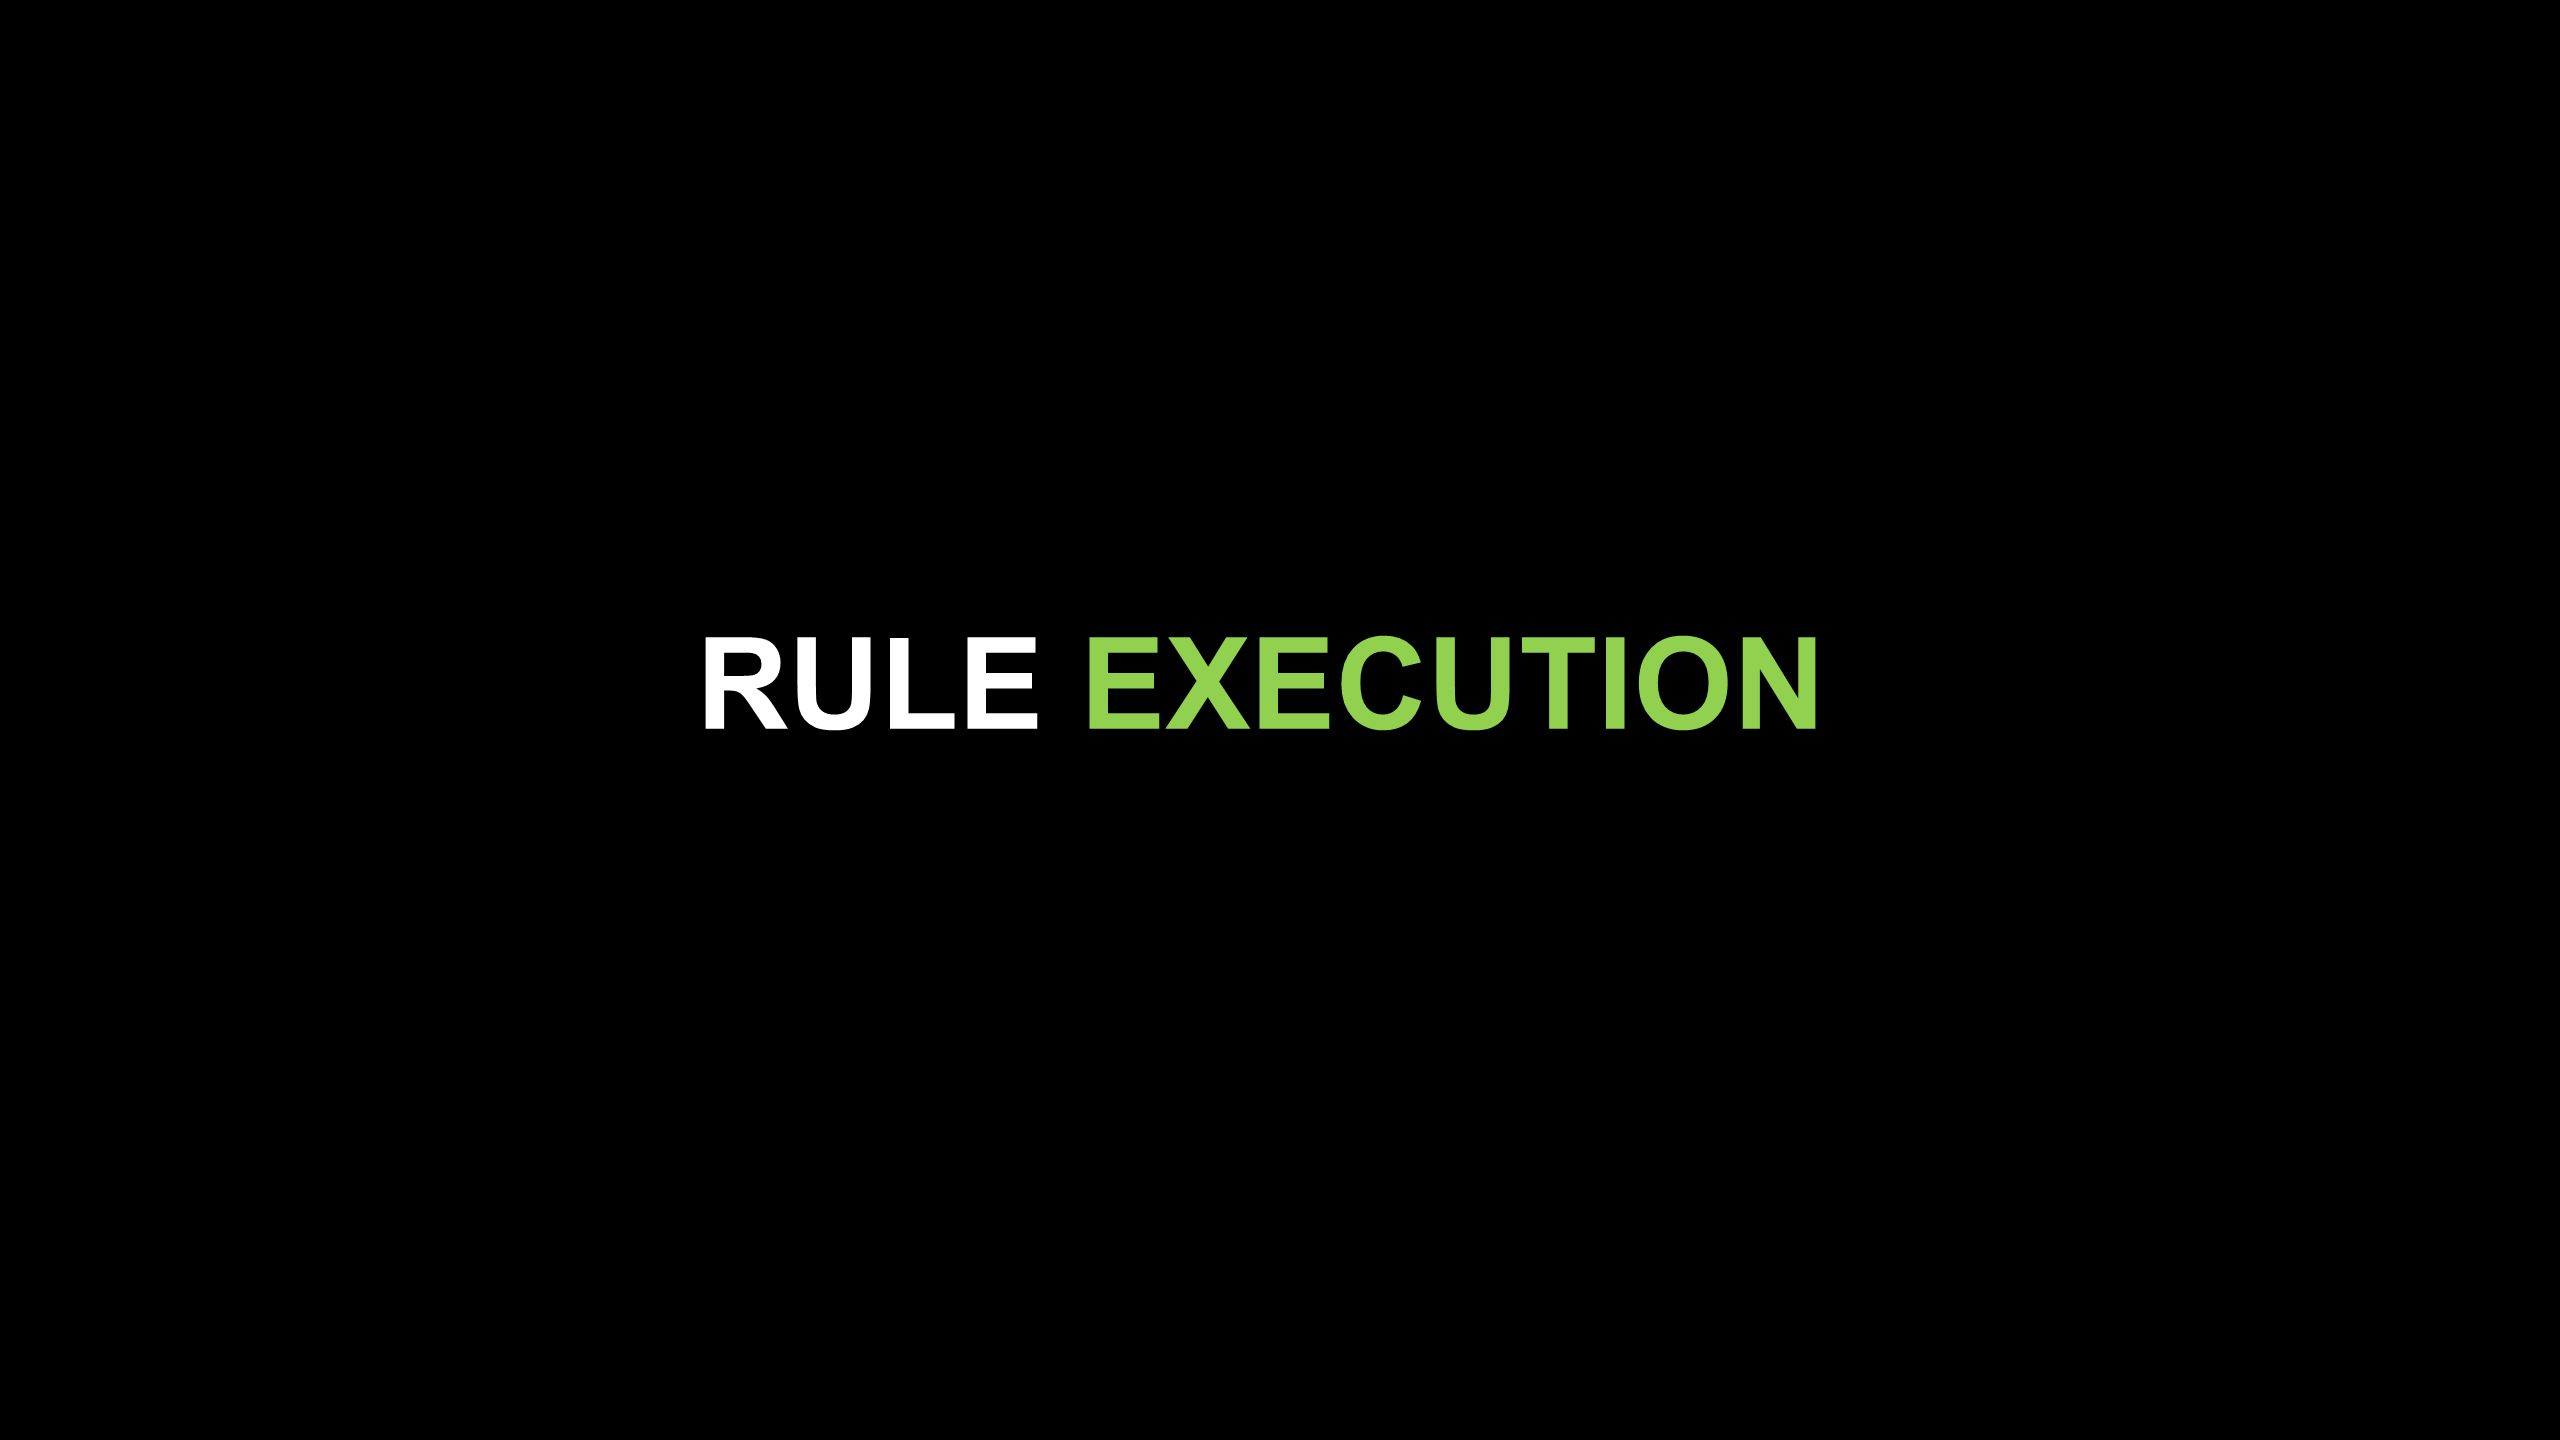 RULE EXECUTION